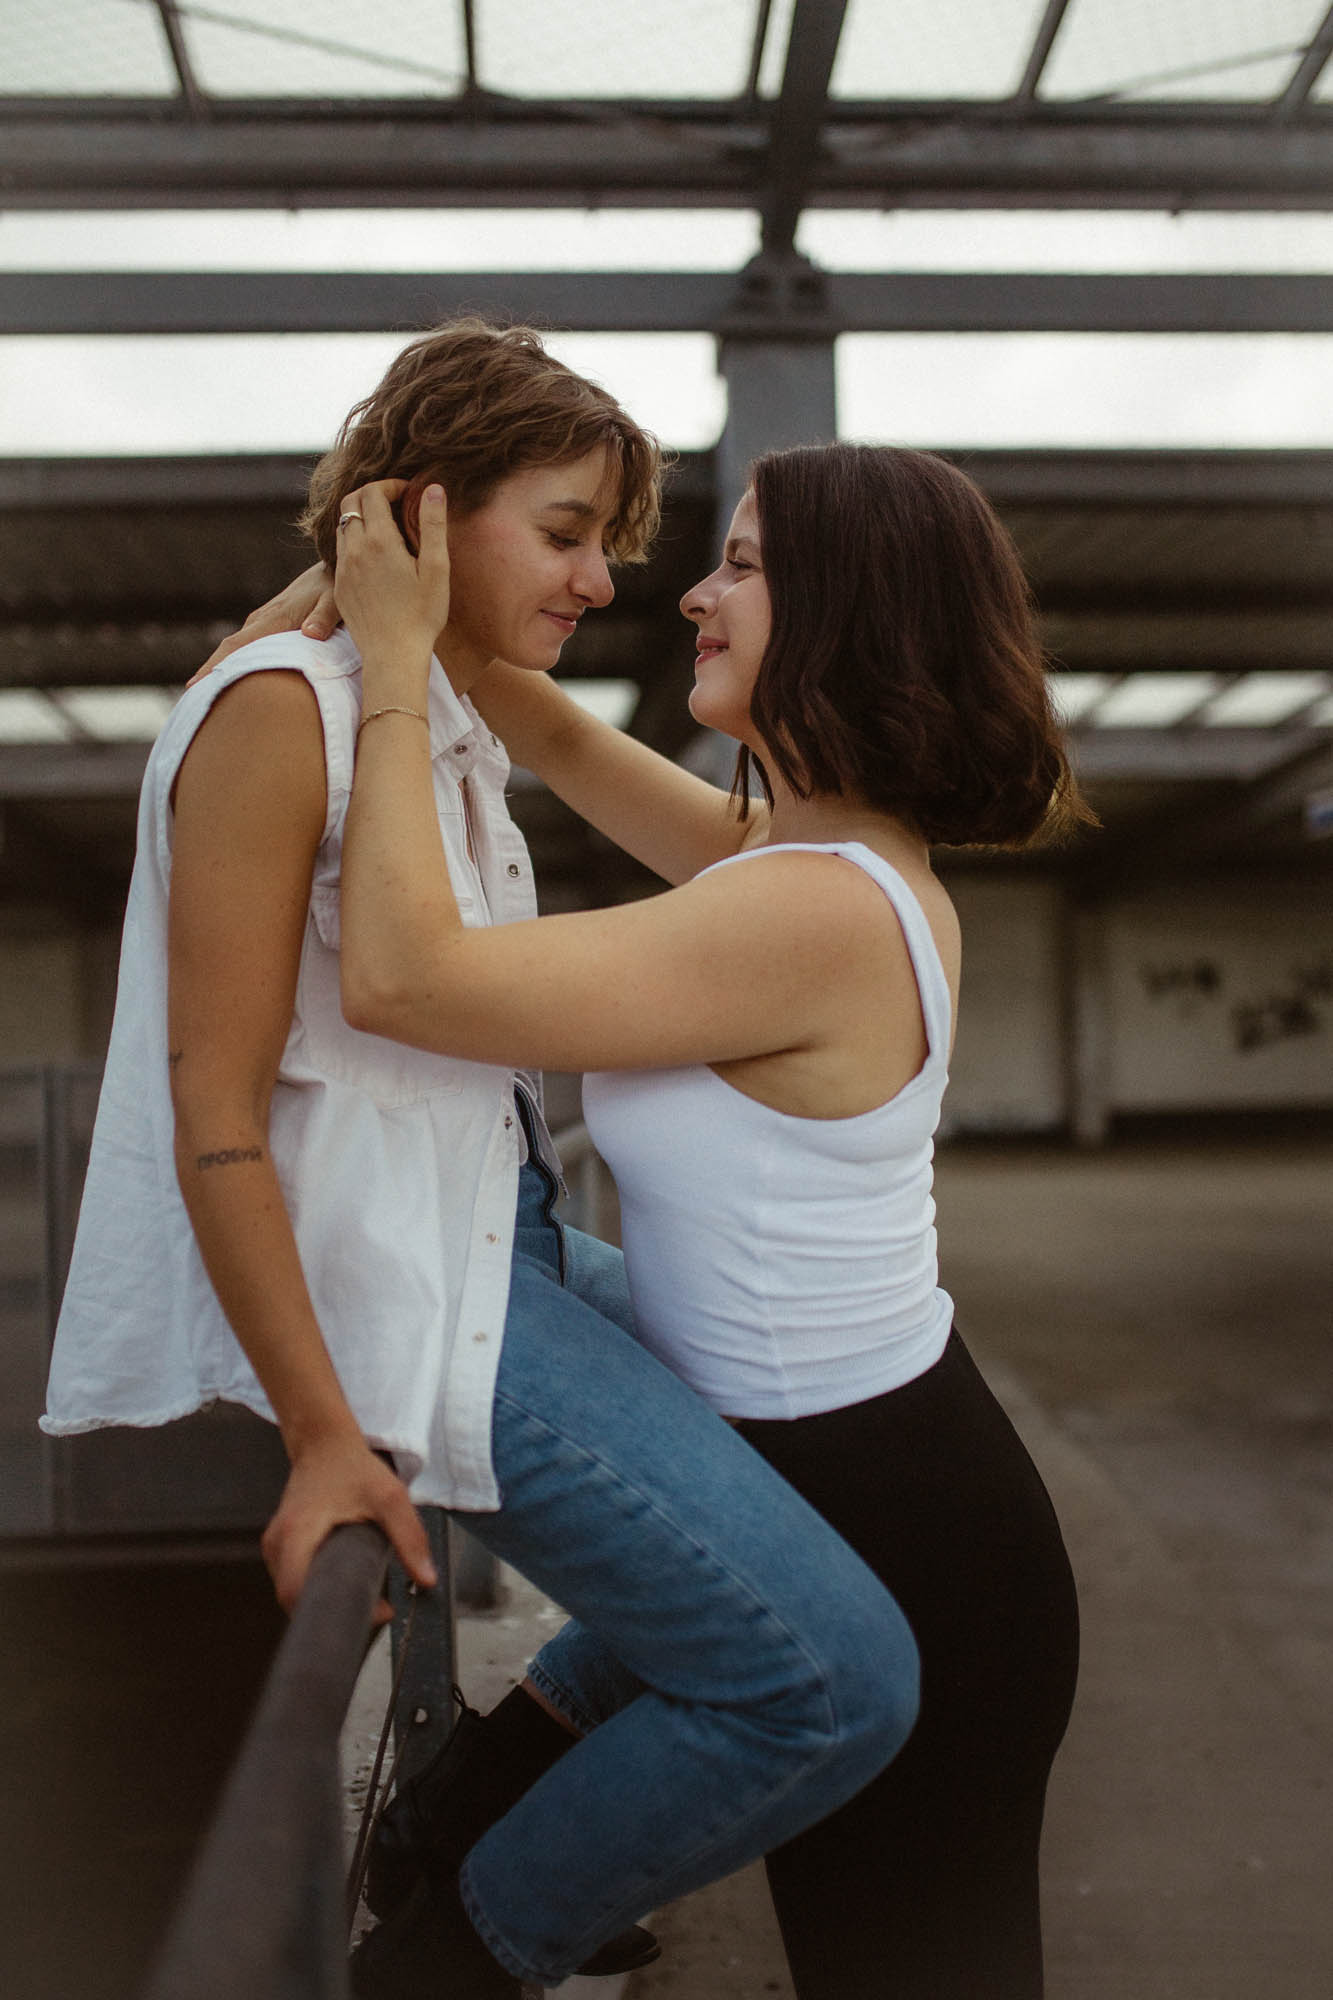 Lesbian Love Story - Berlin Germany - Dancing With Her